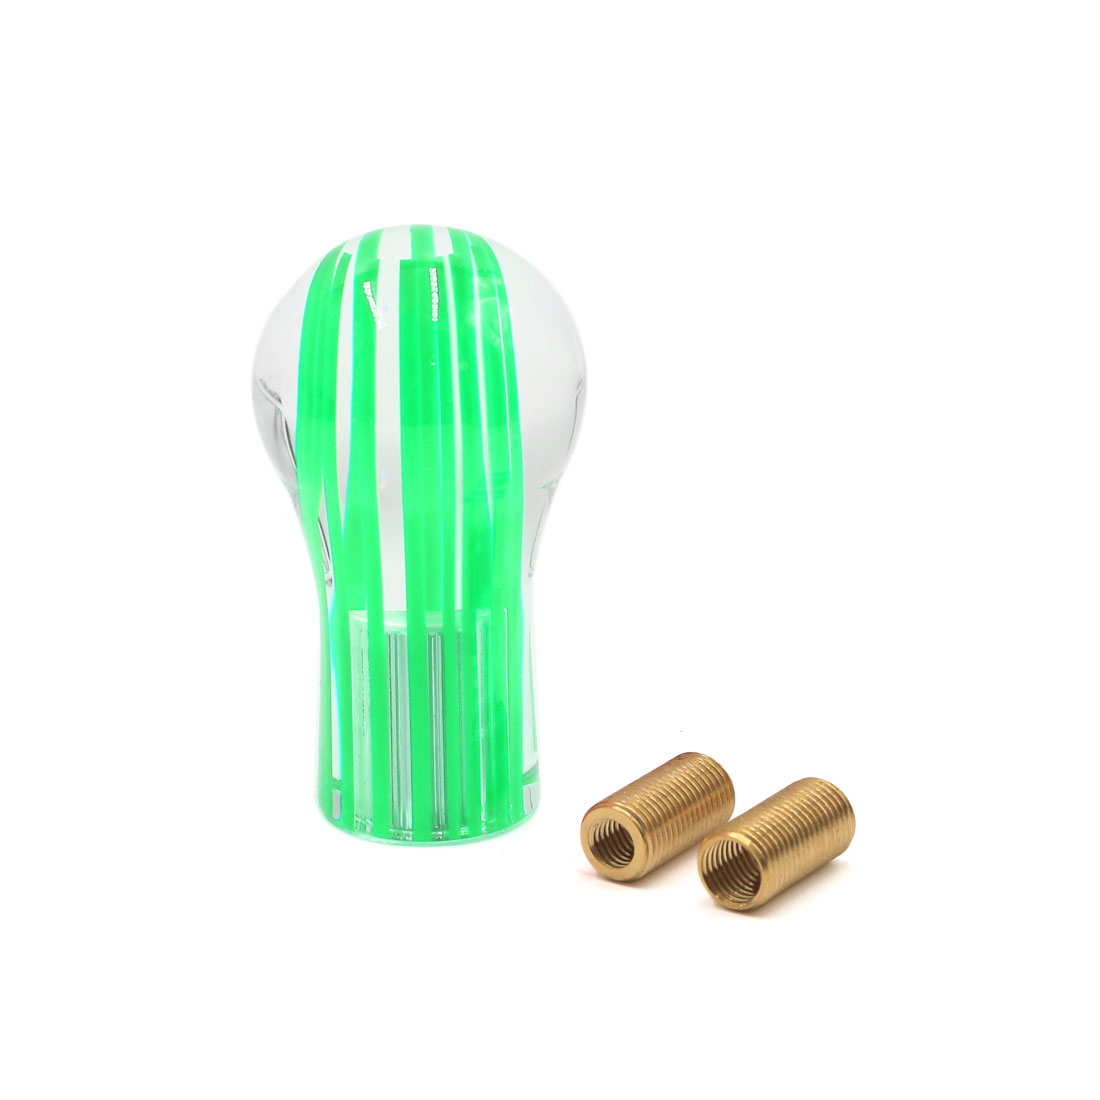 3.5 Inches Long Gear Shift Knob Lever Shifter Cover for Manual Car Clear Green by Unique Bargains